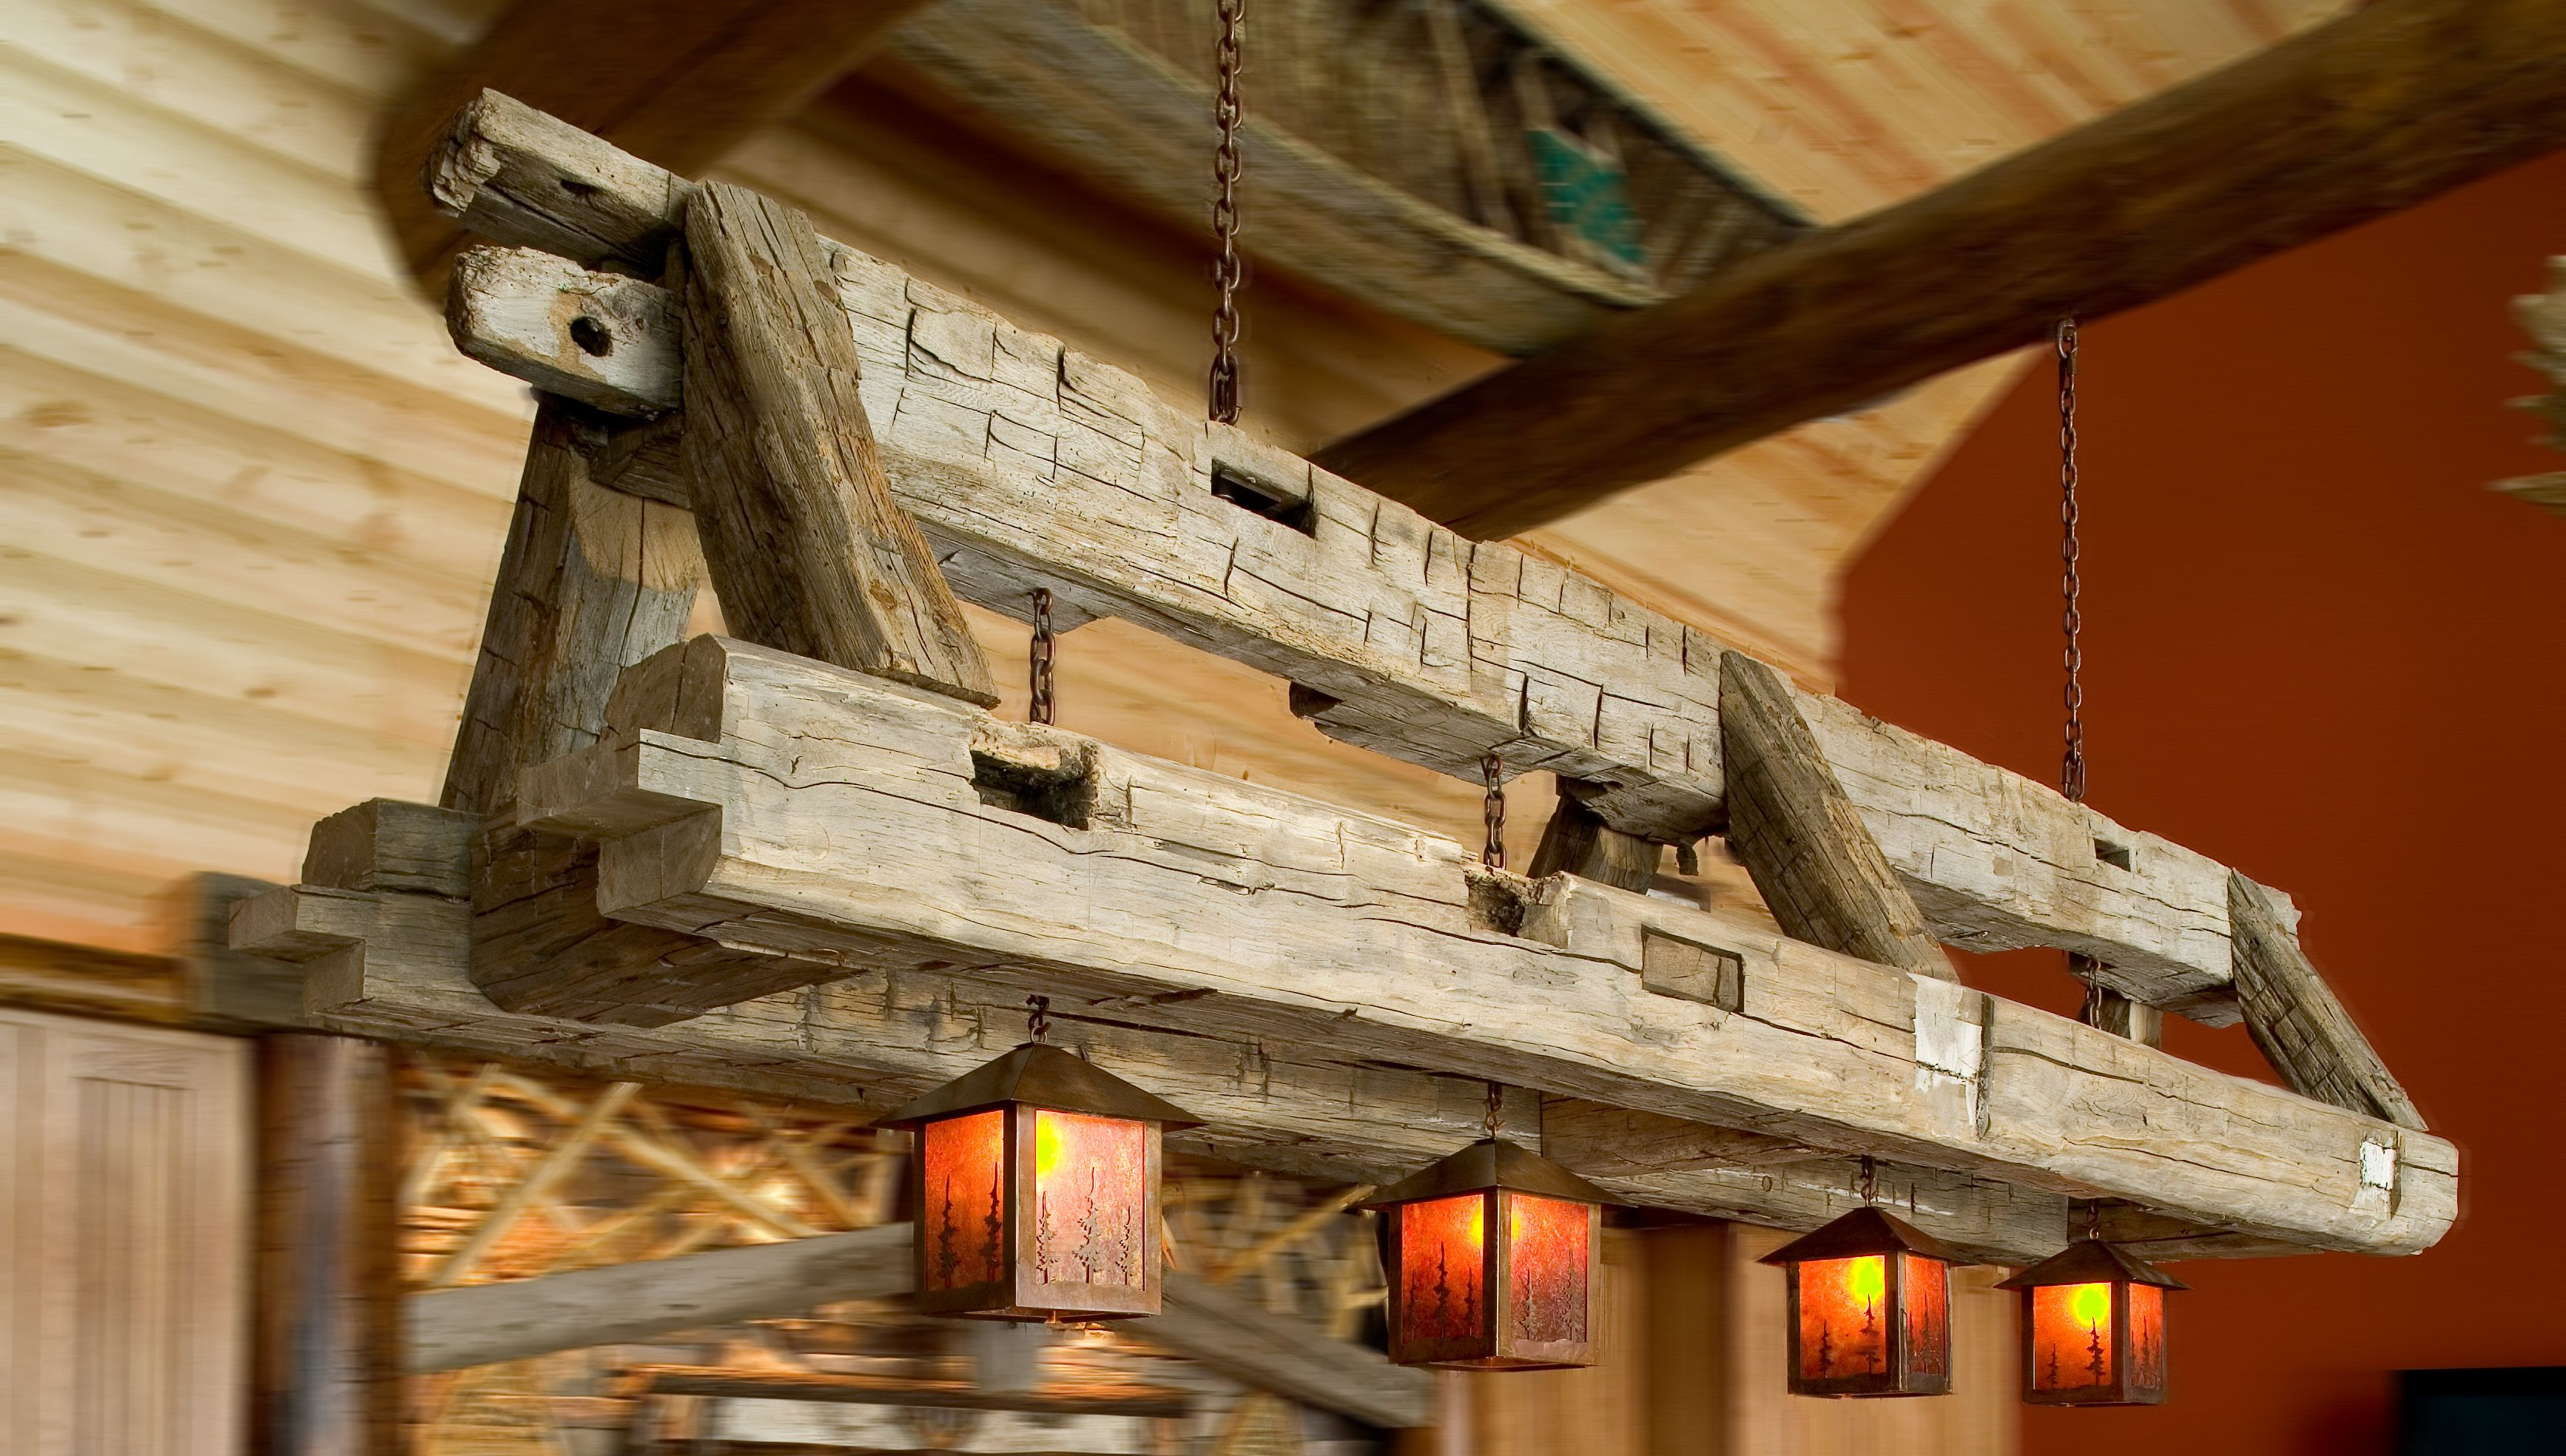 1000 images about rustic lighting ideas for my kitchen island on pinterest hanging lights rustic lighting and primitive kitchen bar lighting ideas